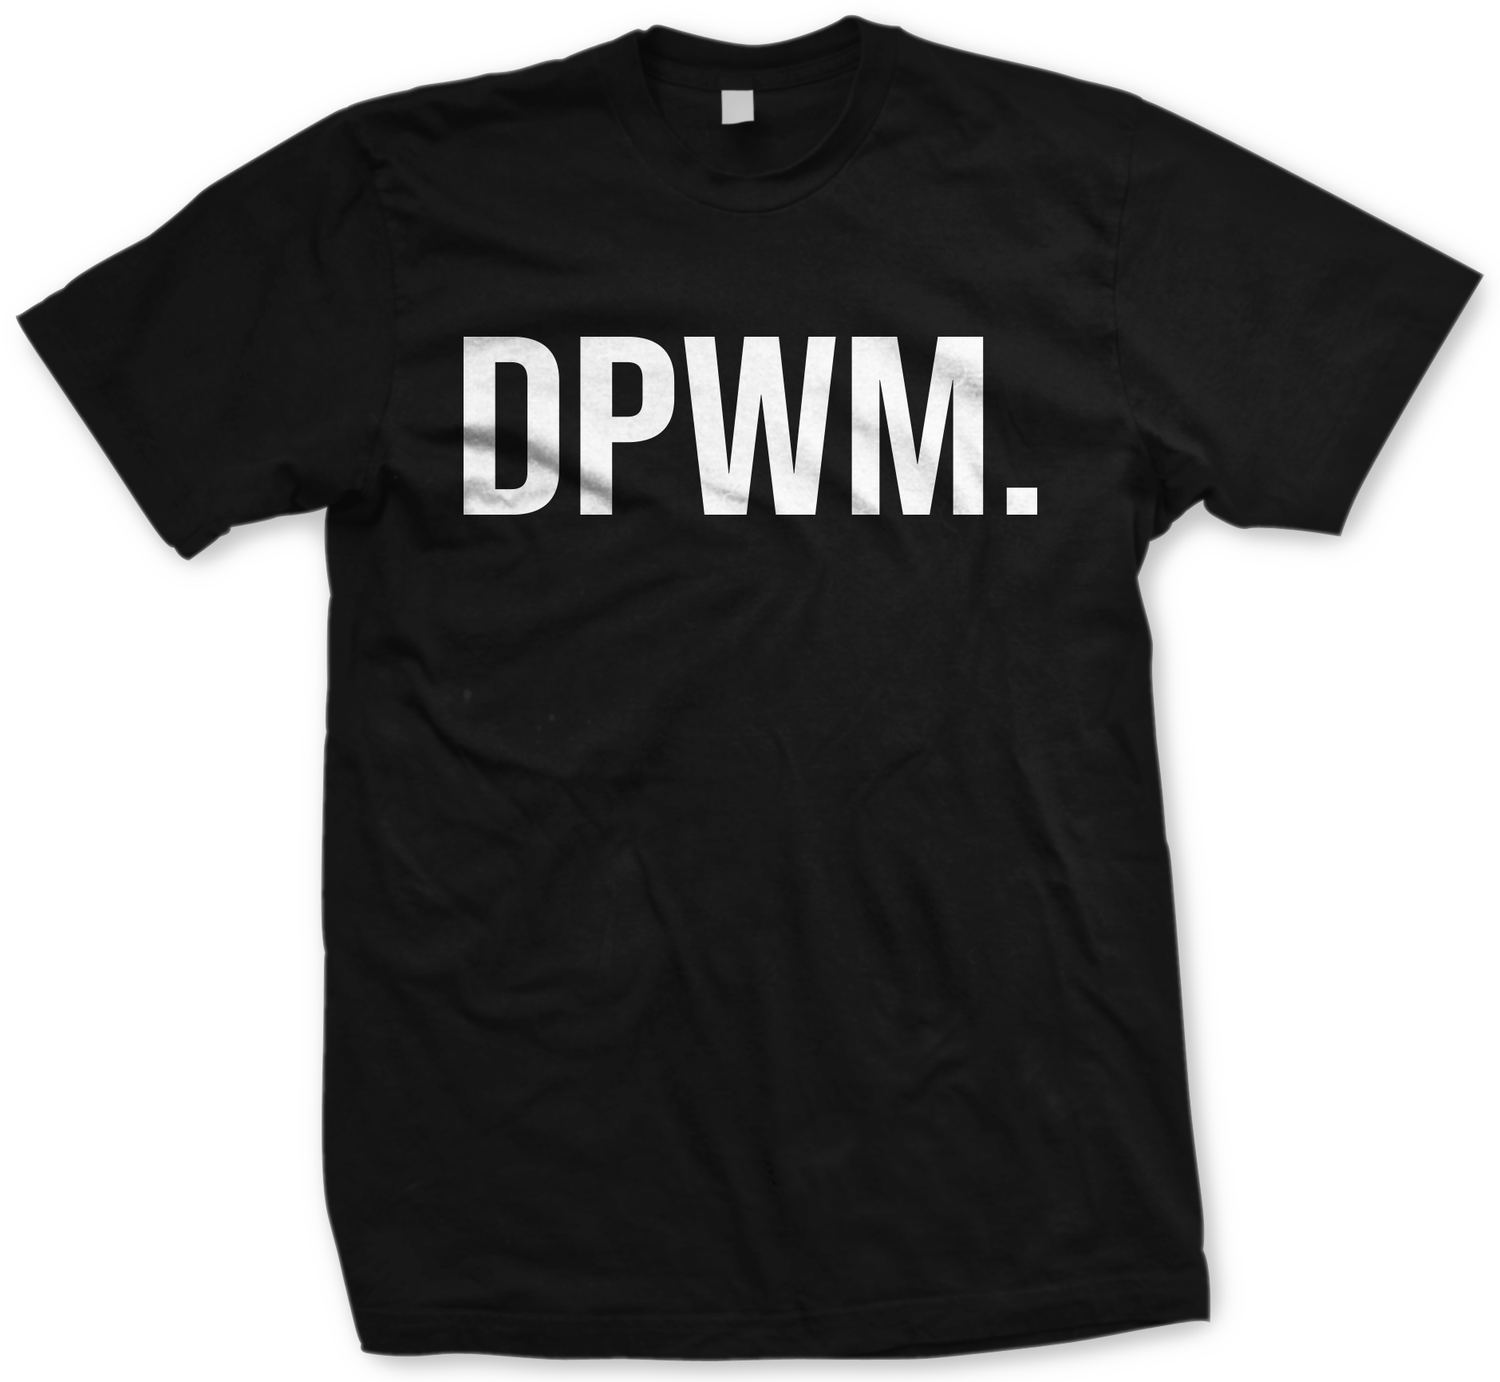 Image of DPWM.